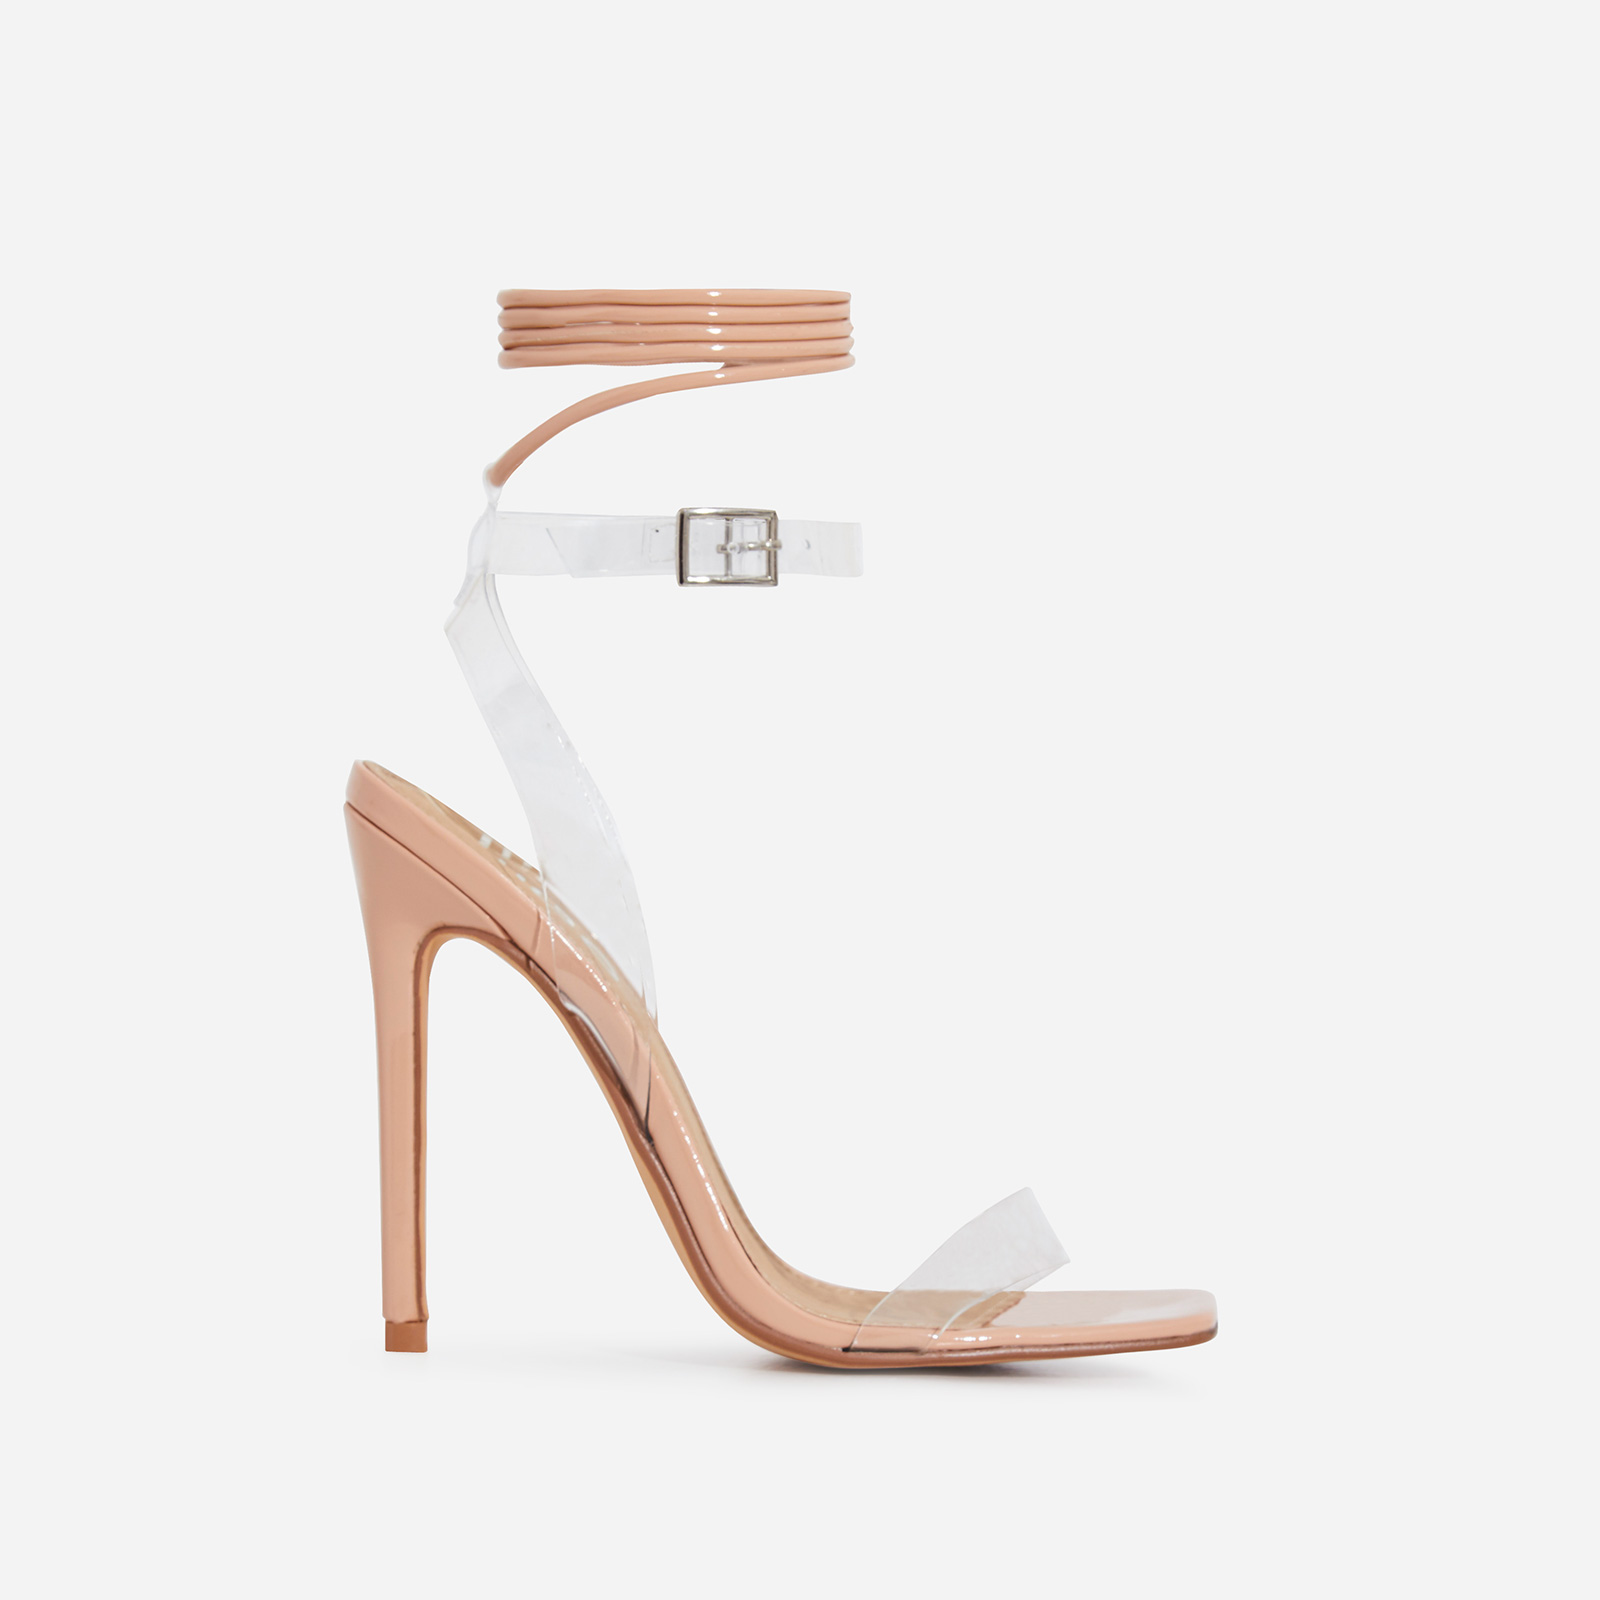 Double Square Toe Perspex Lace Up Heel In Nude Patent